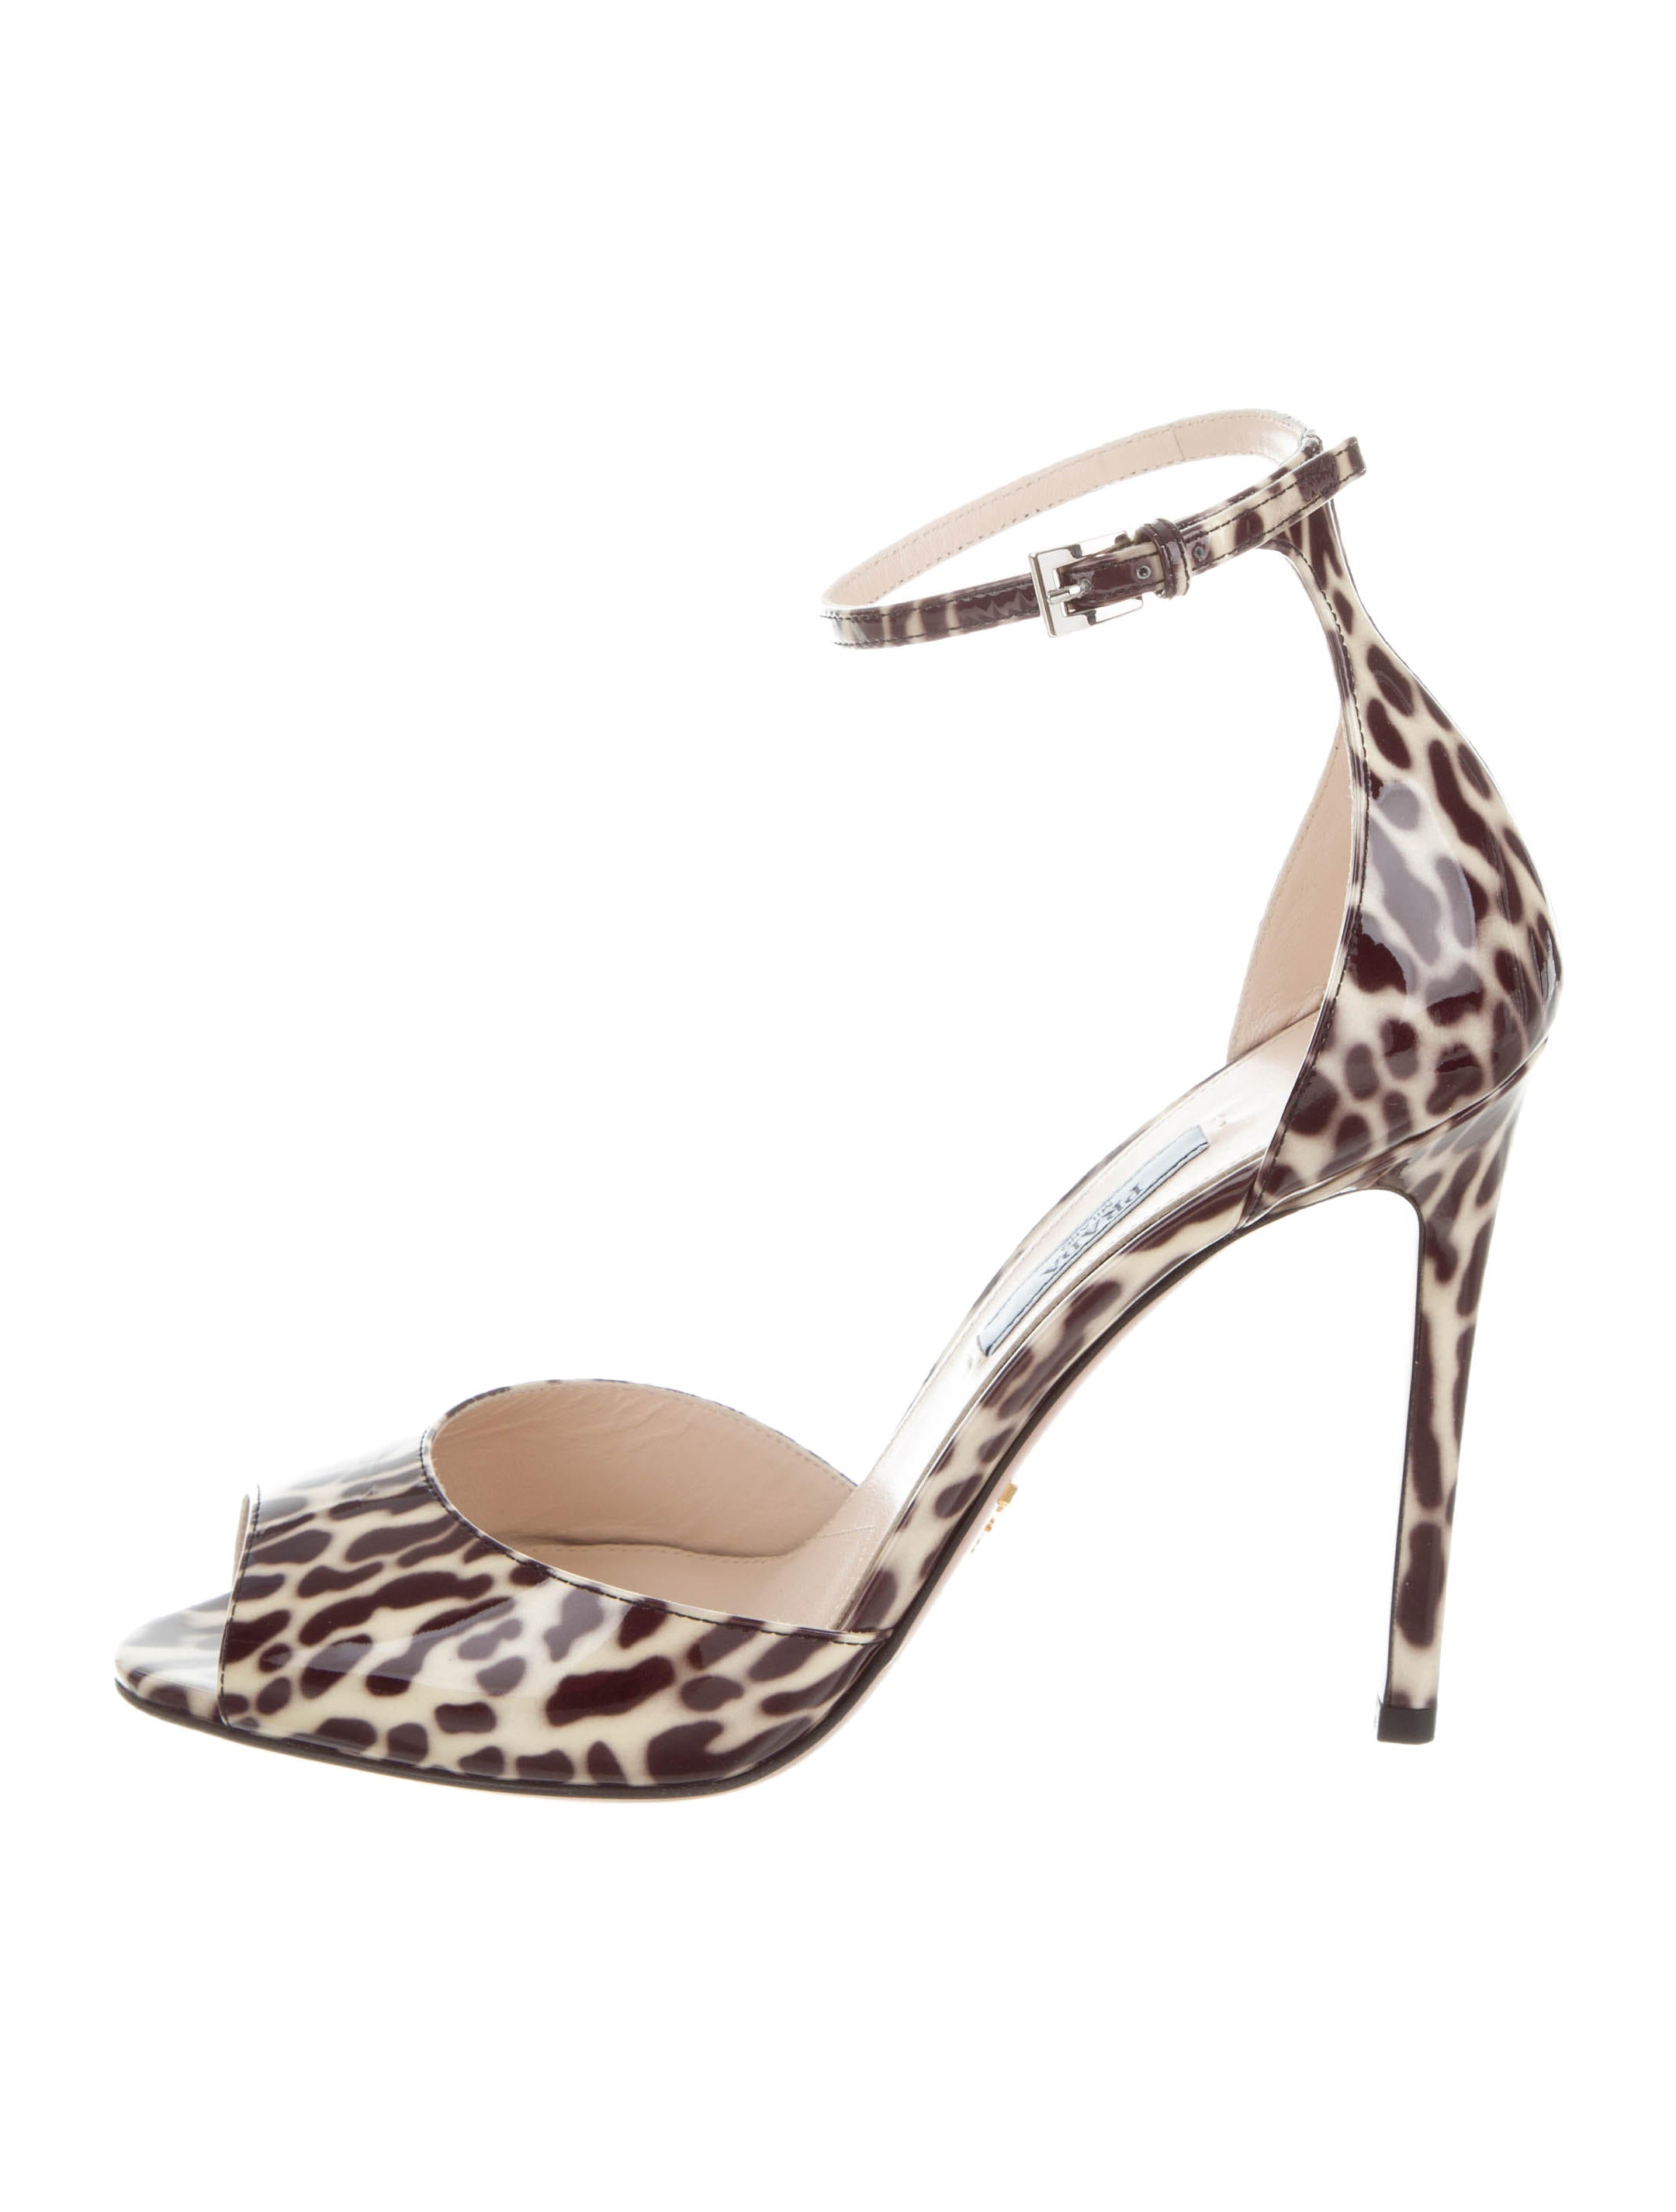 manchester great sale cheap price choice for sale Prada Printed Pointed-Toe Pumps buy cheap order kaGVVLBaje